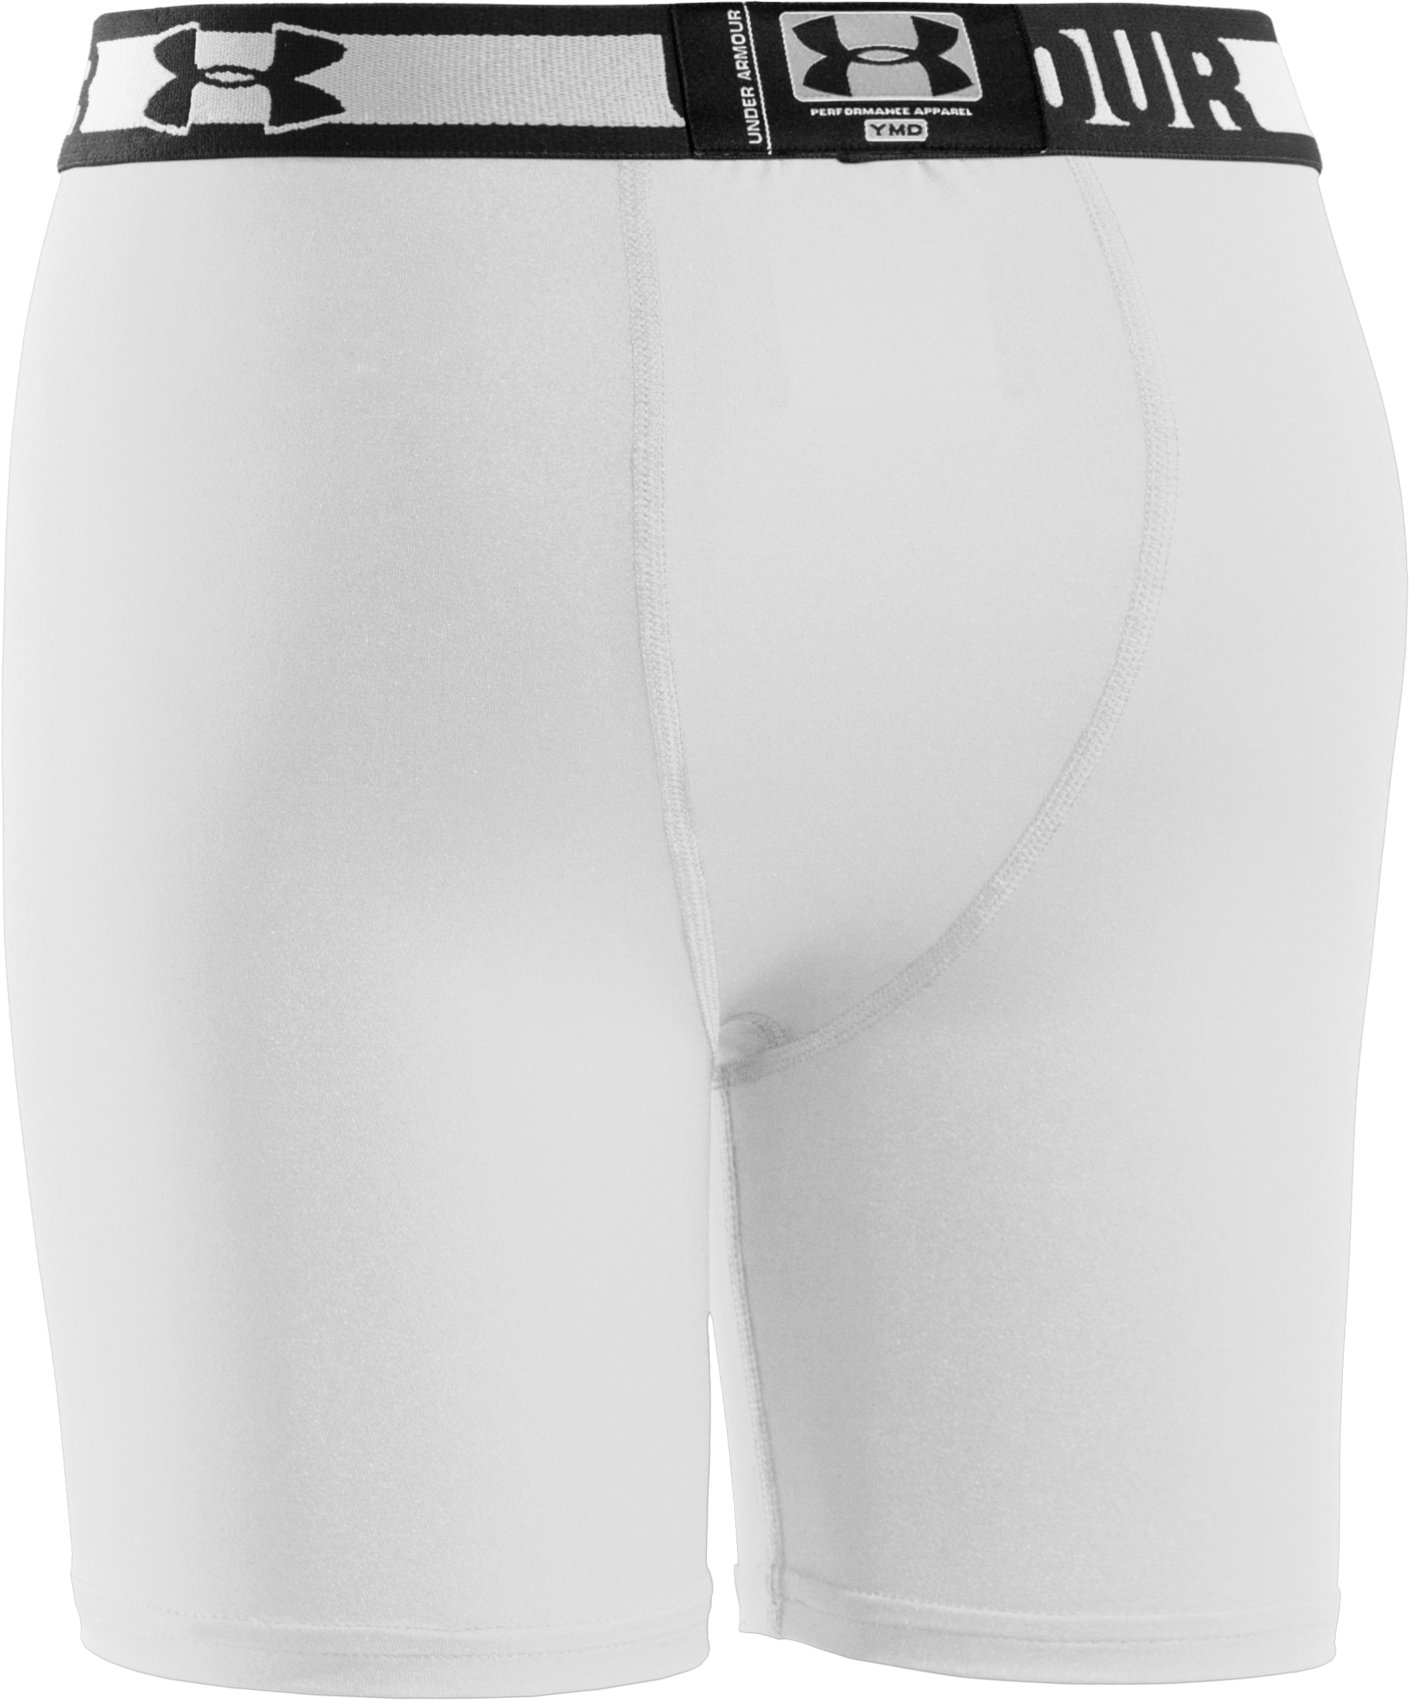 "Boys' HeatGear® Sonic 4"" Fitted Shorts, White"